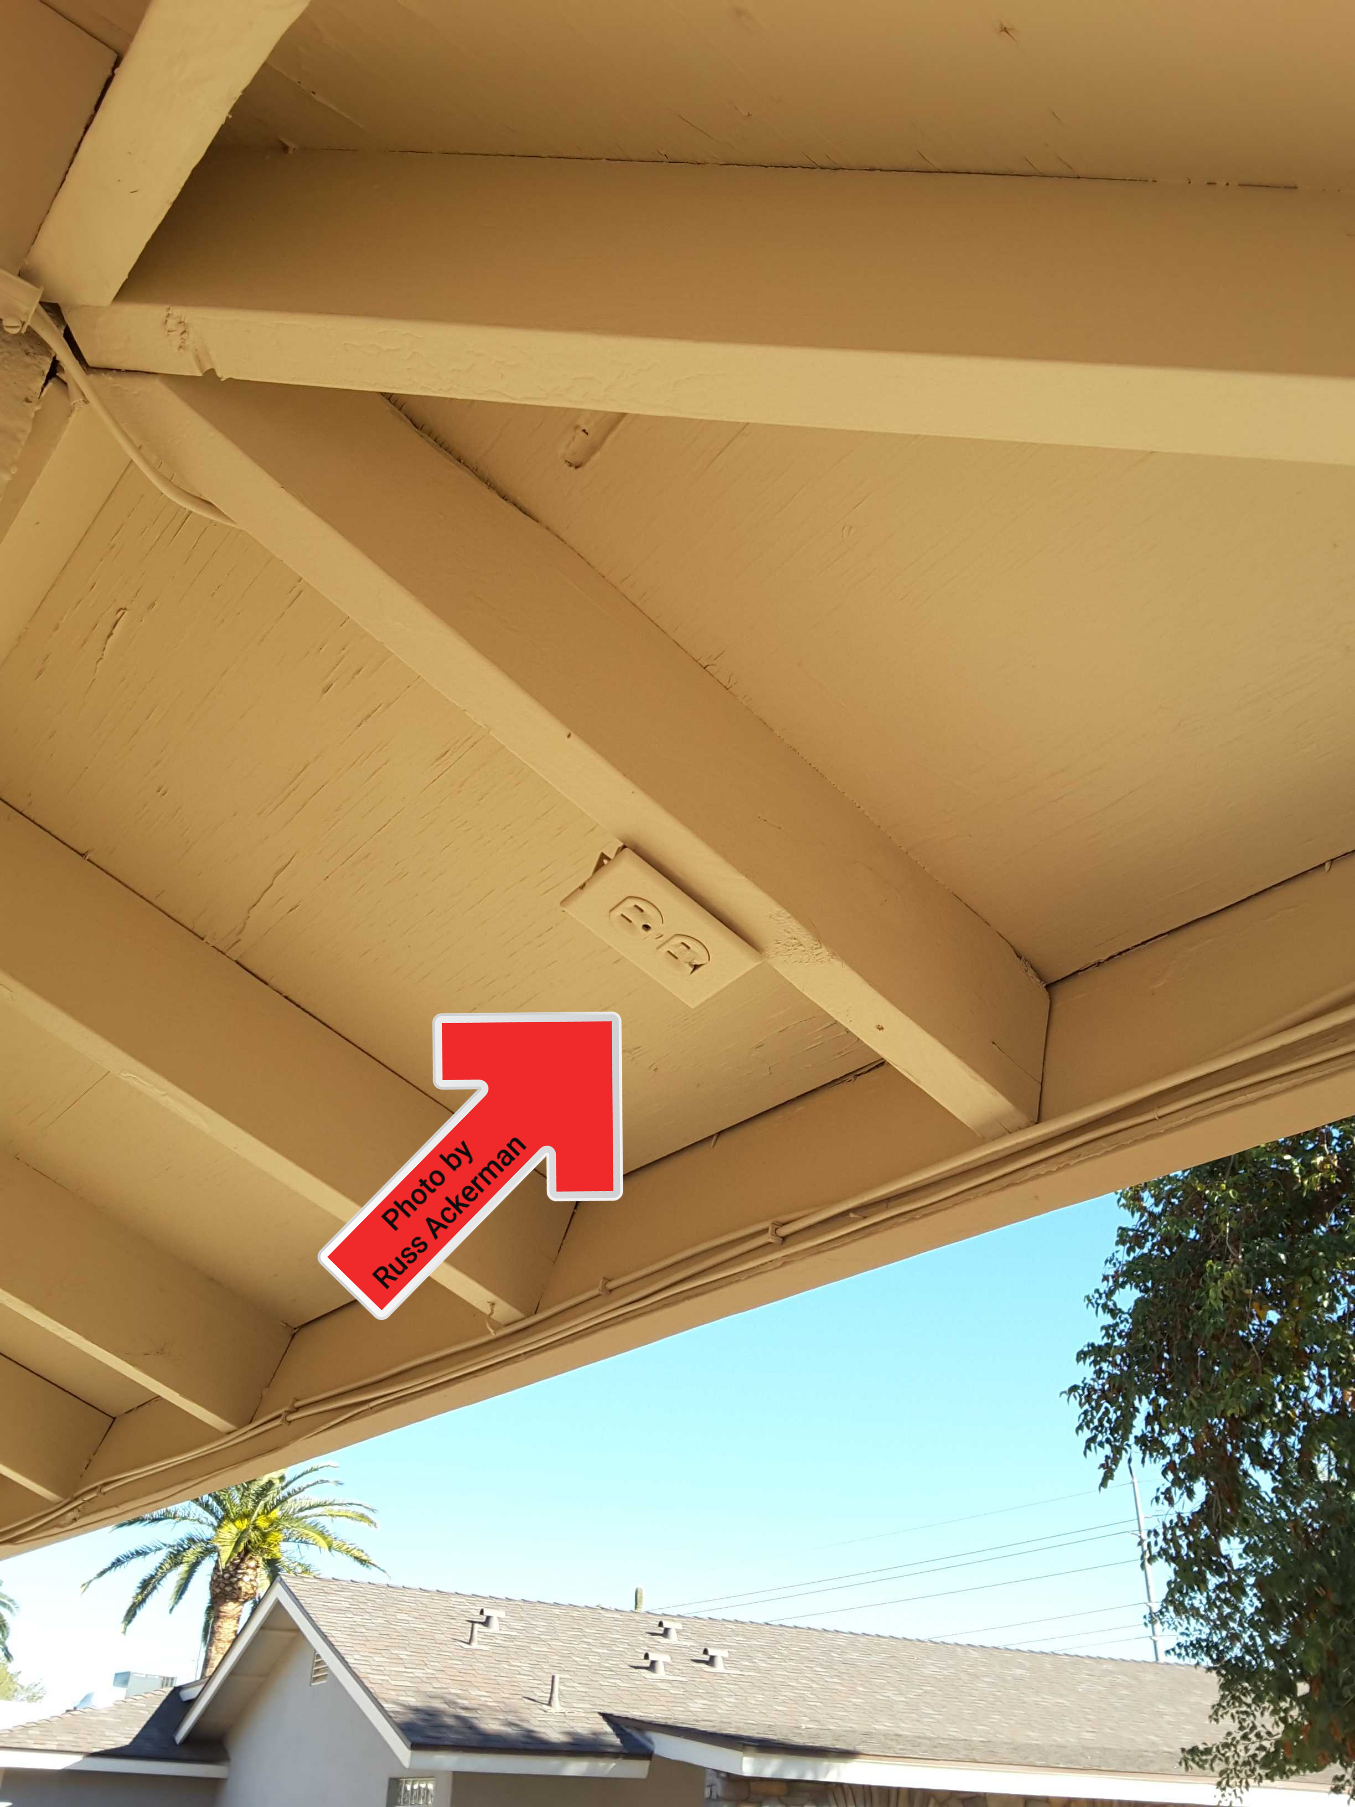 This receptacle may be under the eaves, however it should still be a weather resistant receptacle with a cover and GFCI protected.